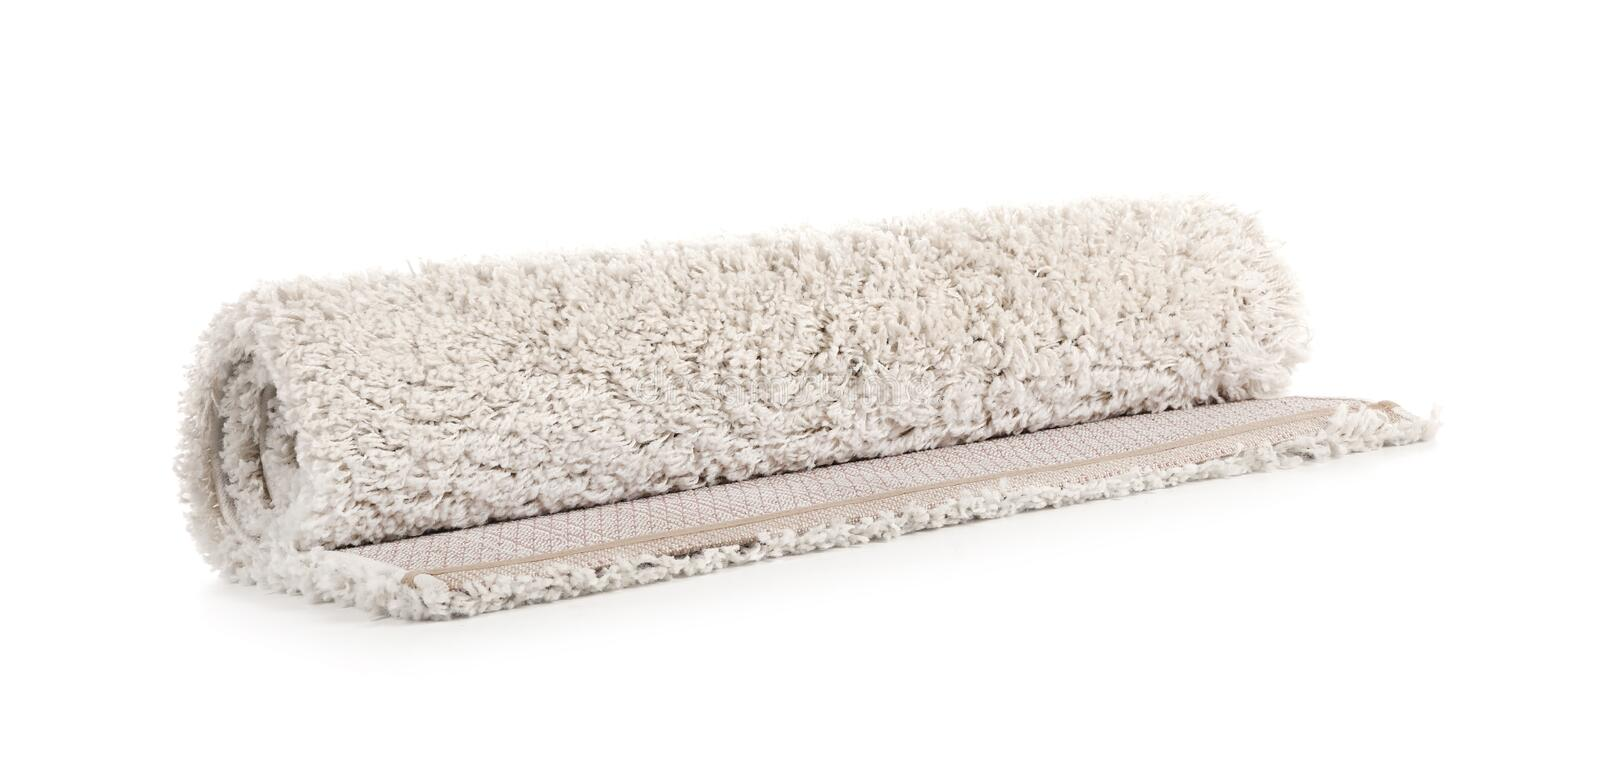 Rolled fuzzy carpet on white background. Interior element royalty free stock photography